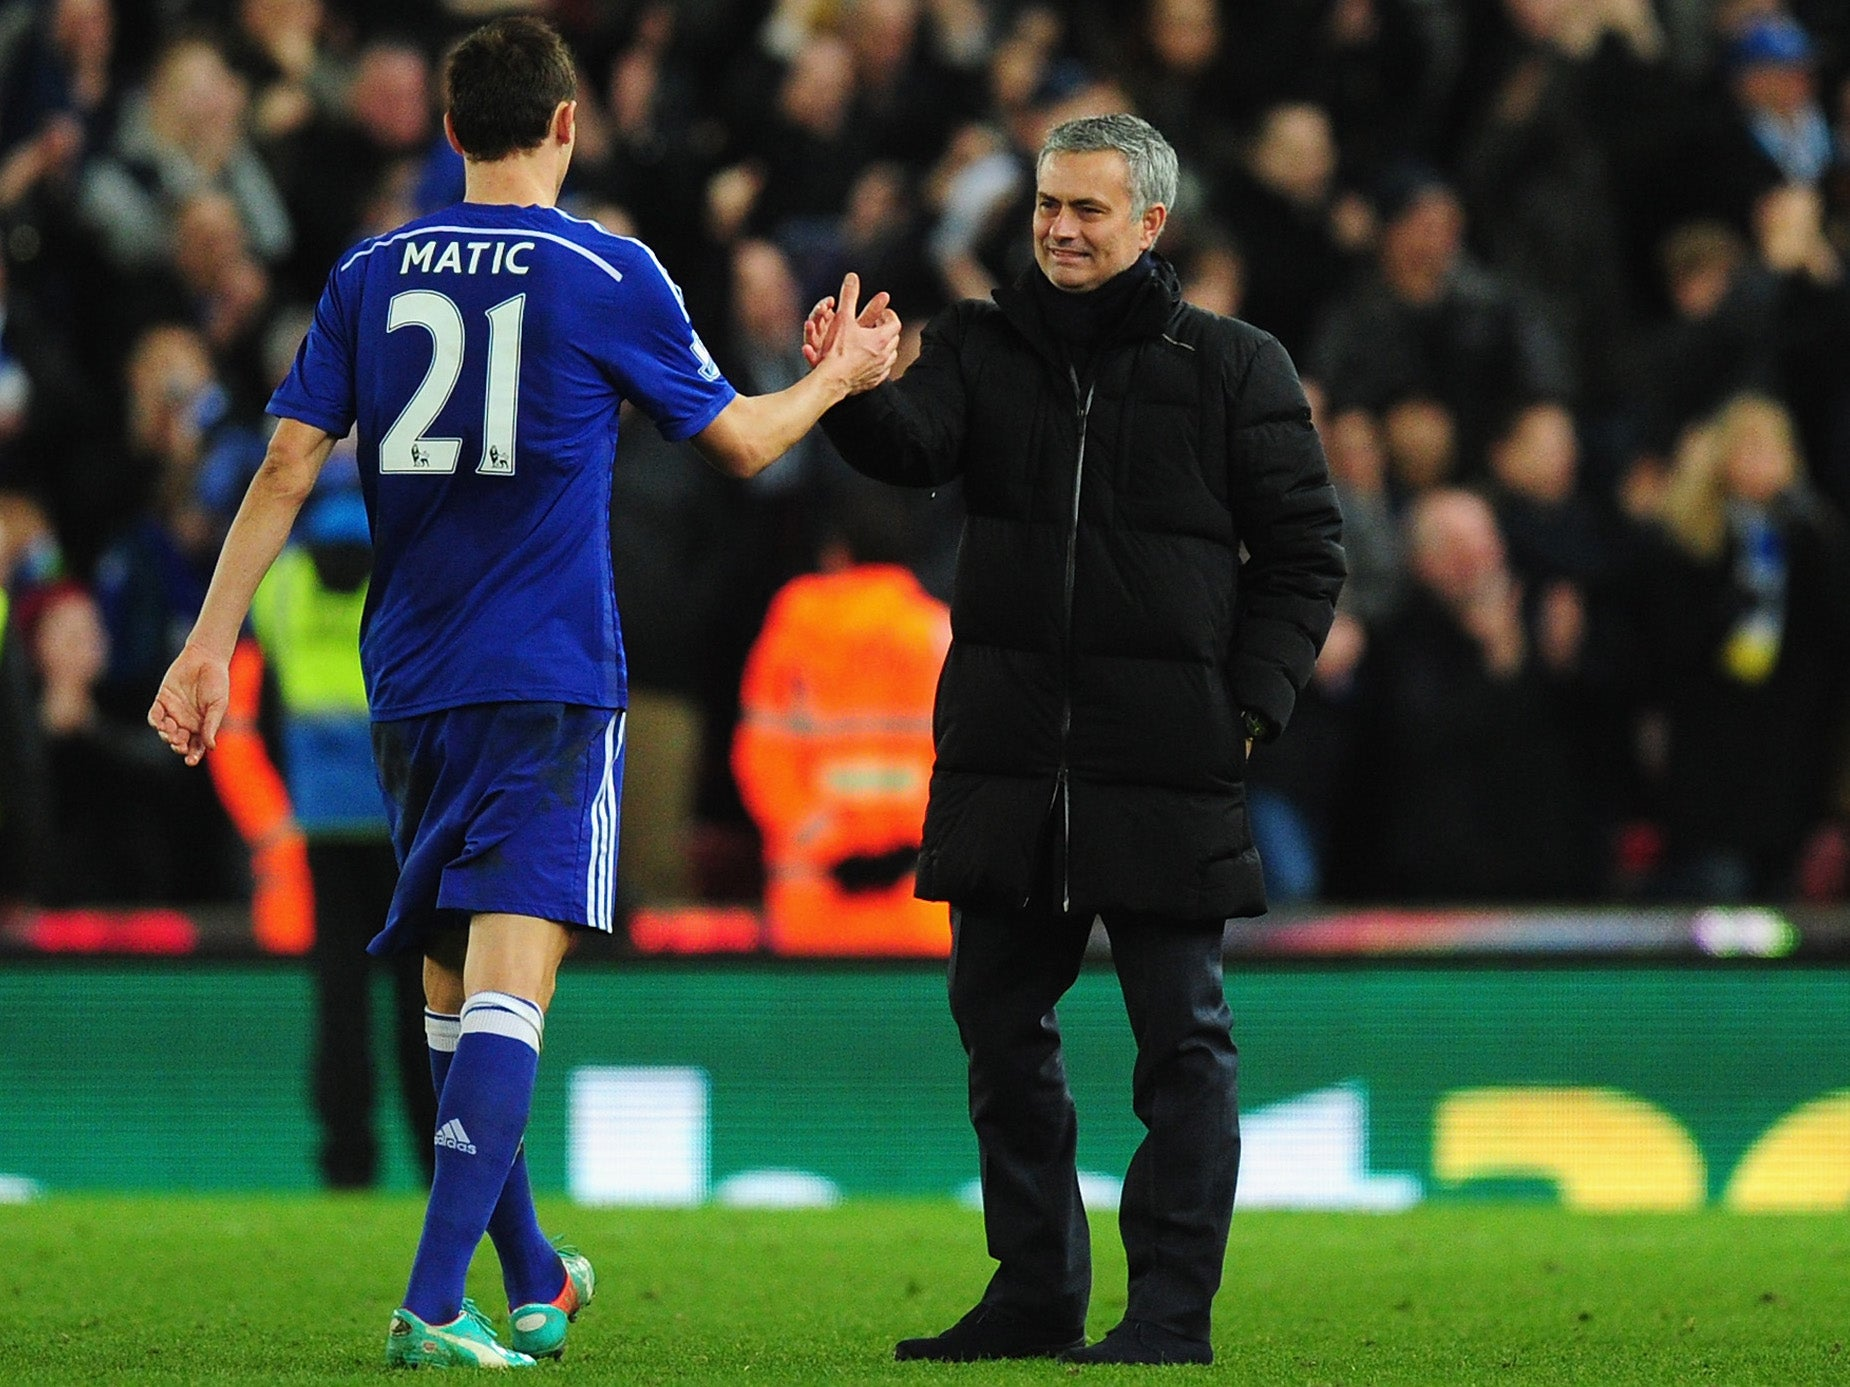 Who might Chelsea sign after selling Nemanja Matic to